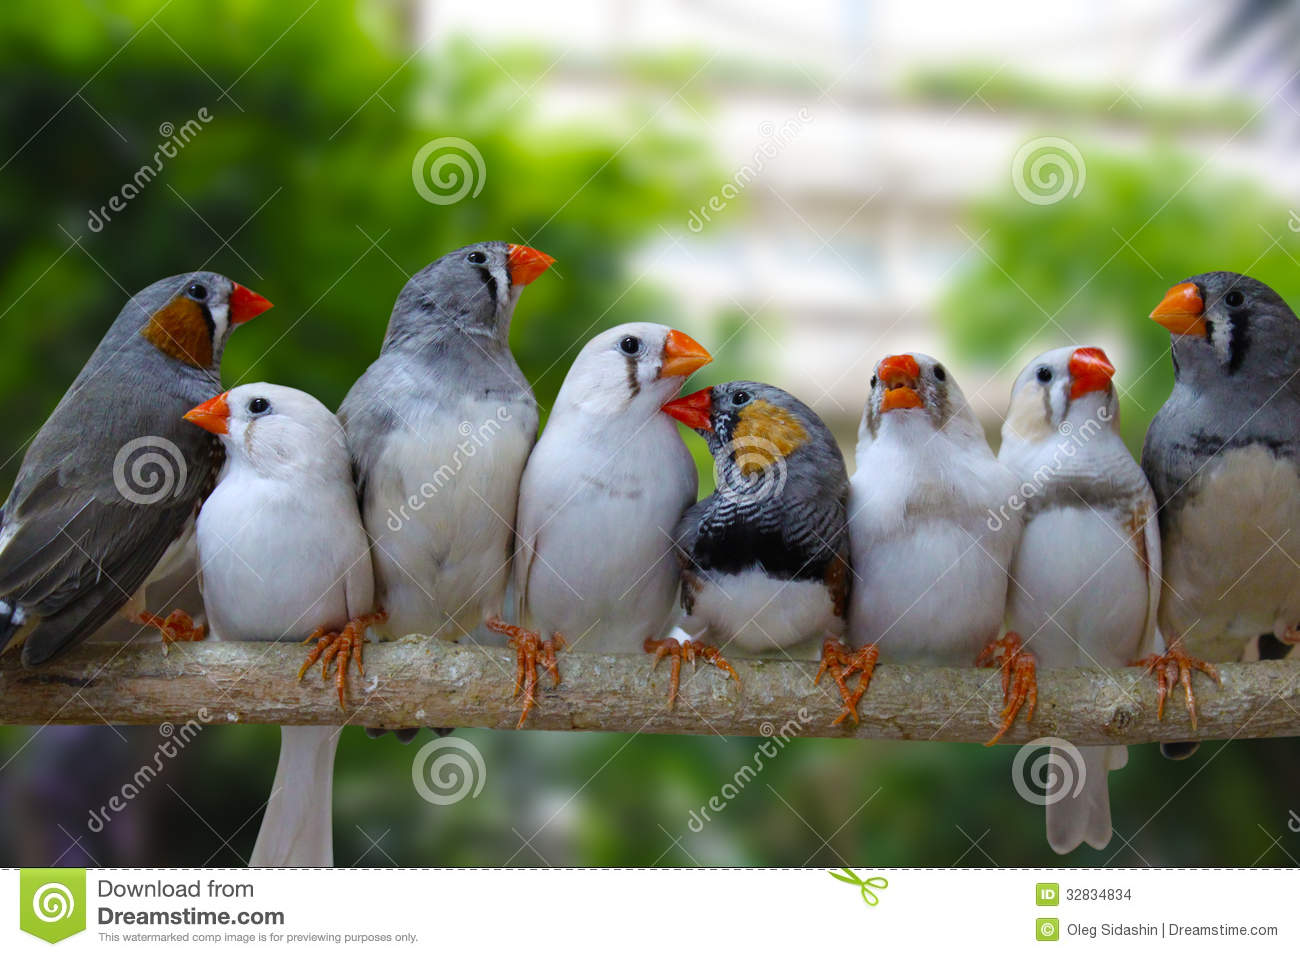 Cute Newborn Baby Hd Wallpapers Group Of Zebra Finch Birds Stock Photo Image Of Branch